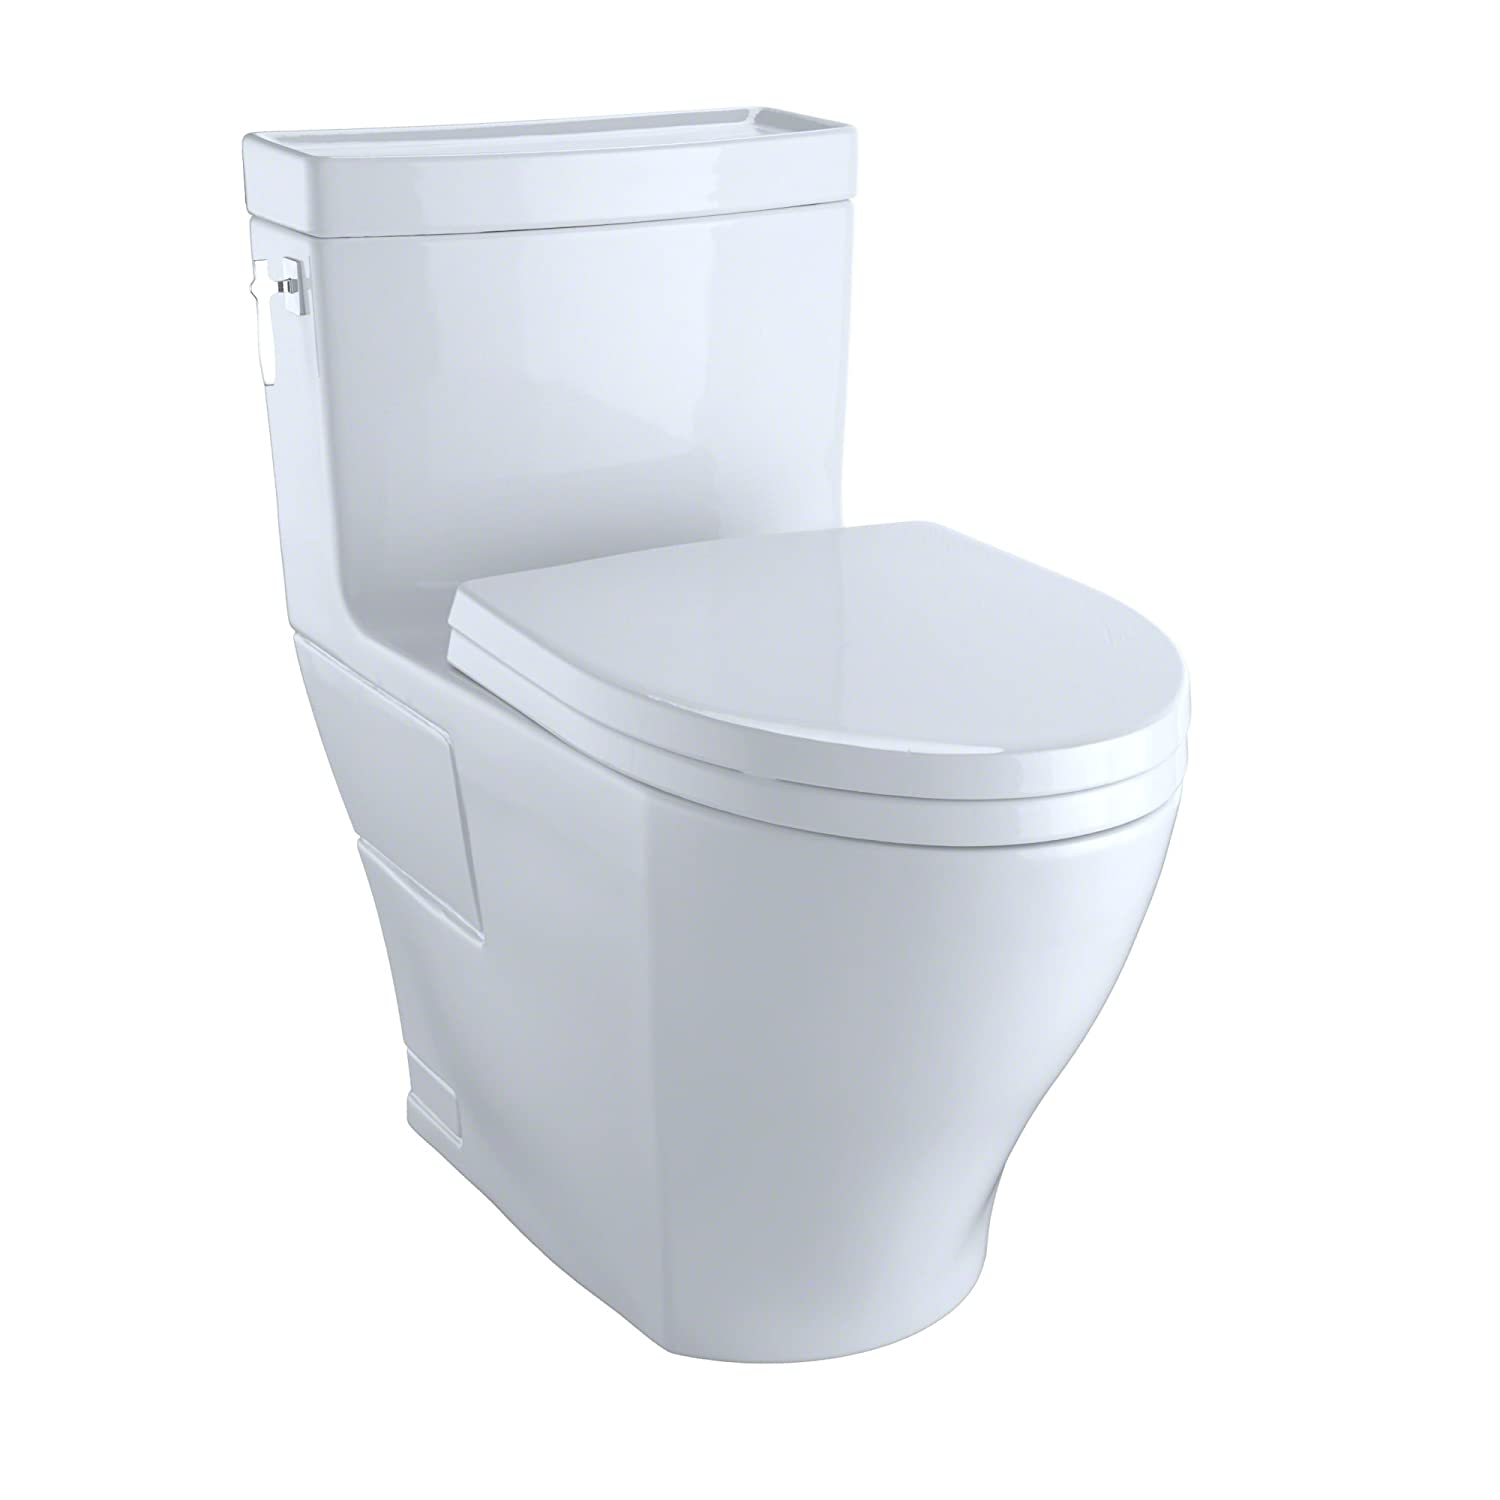 Toto MS626214CEFG#01 Aimes One-Piece High-Efficiency Toilet, 1.28GPF ...